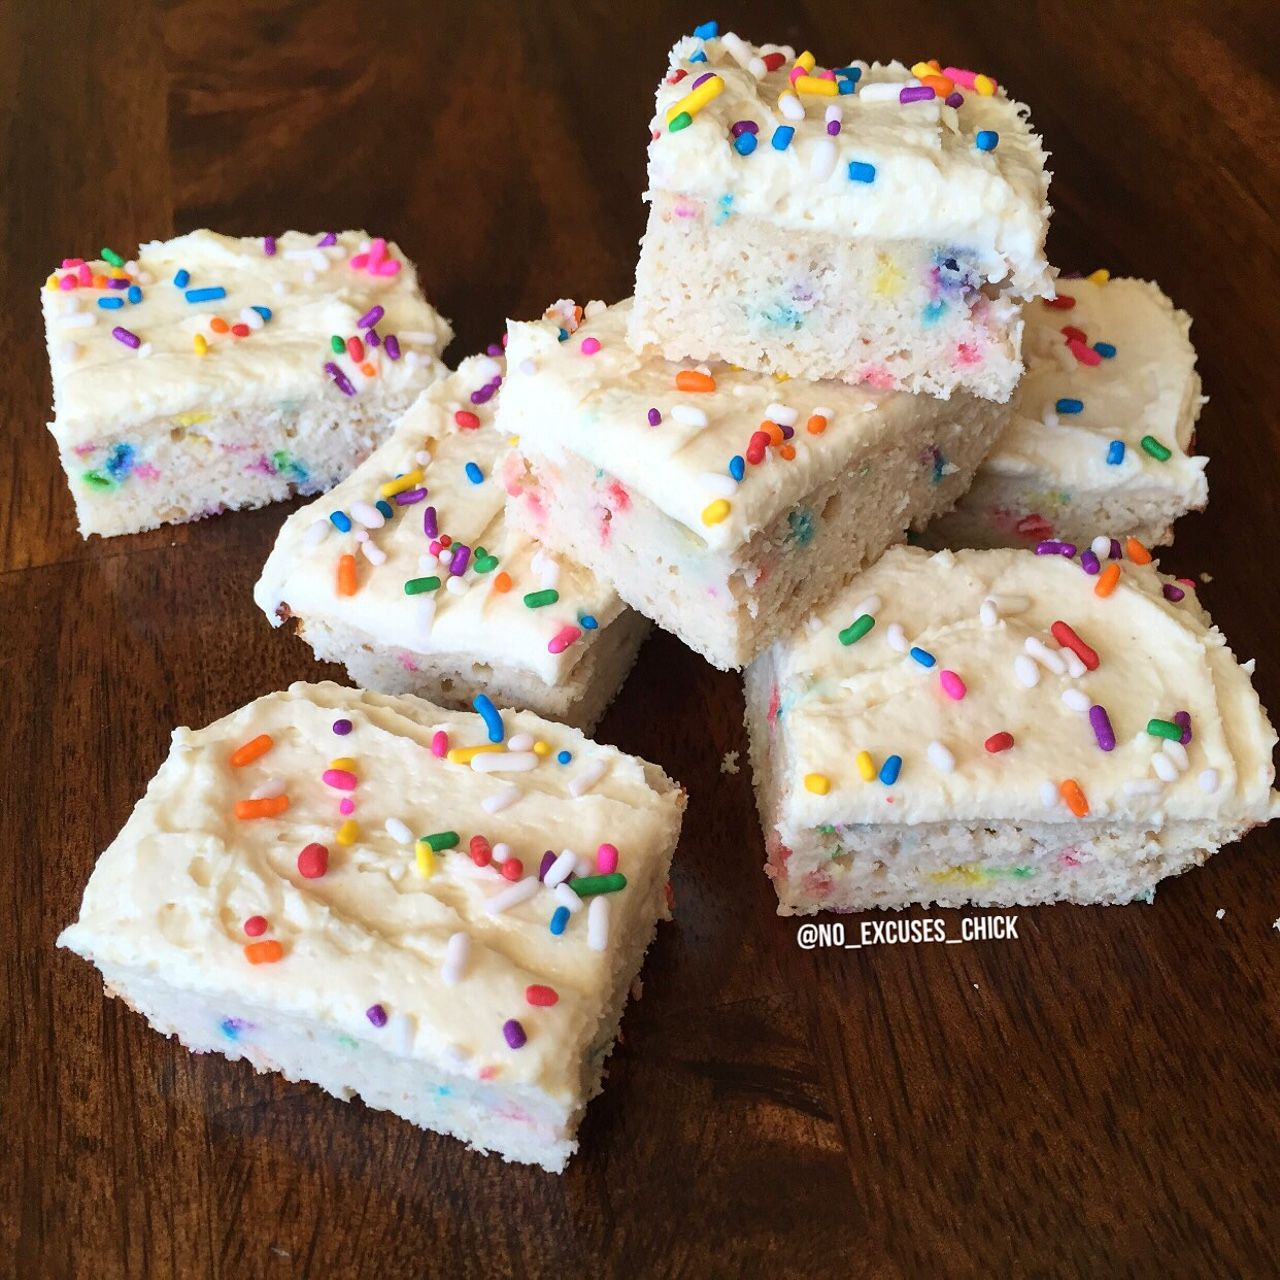 Birthday Cake Protein Blondies Coconut Flour Cashew Butter Or Almond Better Than PB Egg Whites